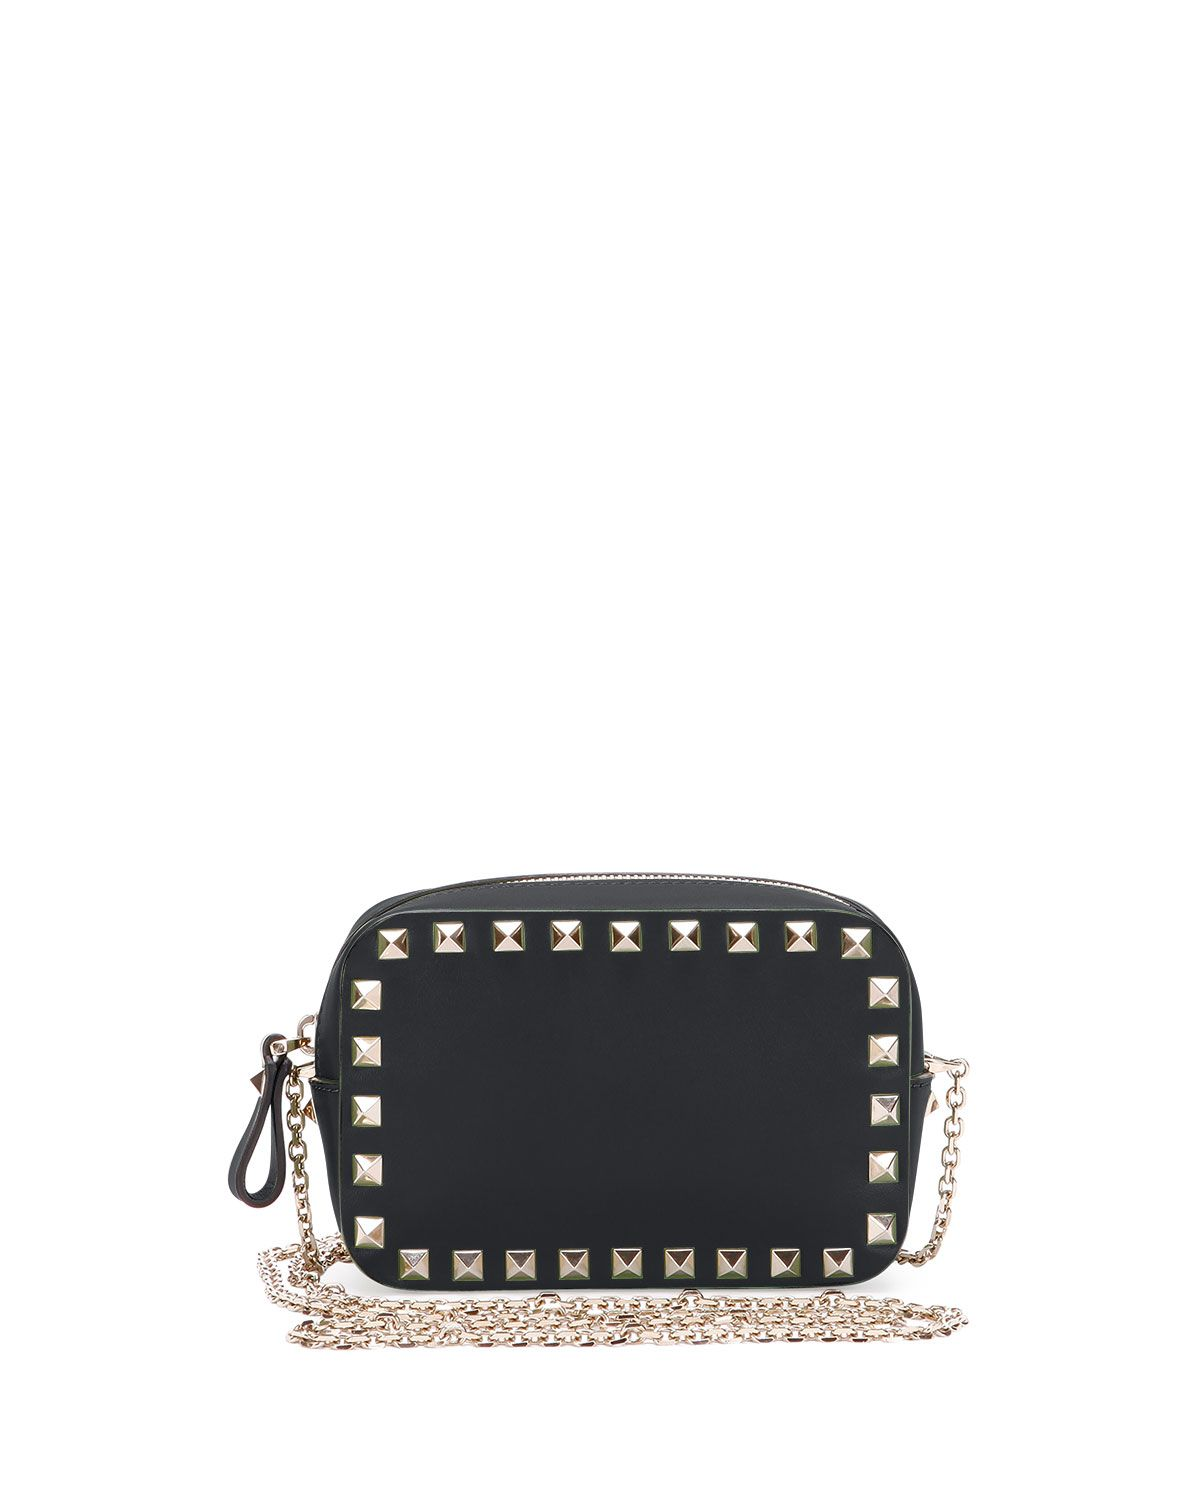 5adb641745a Red Valentino Small Rockstud Chain Camera Crossbody Bag, Black, Size ...